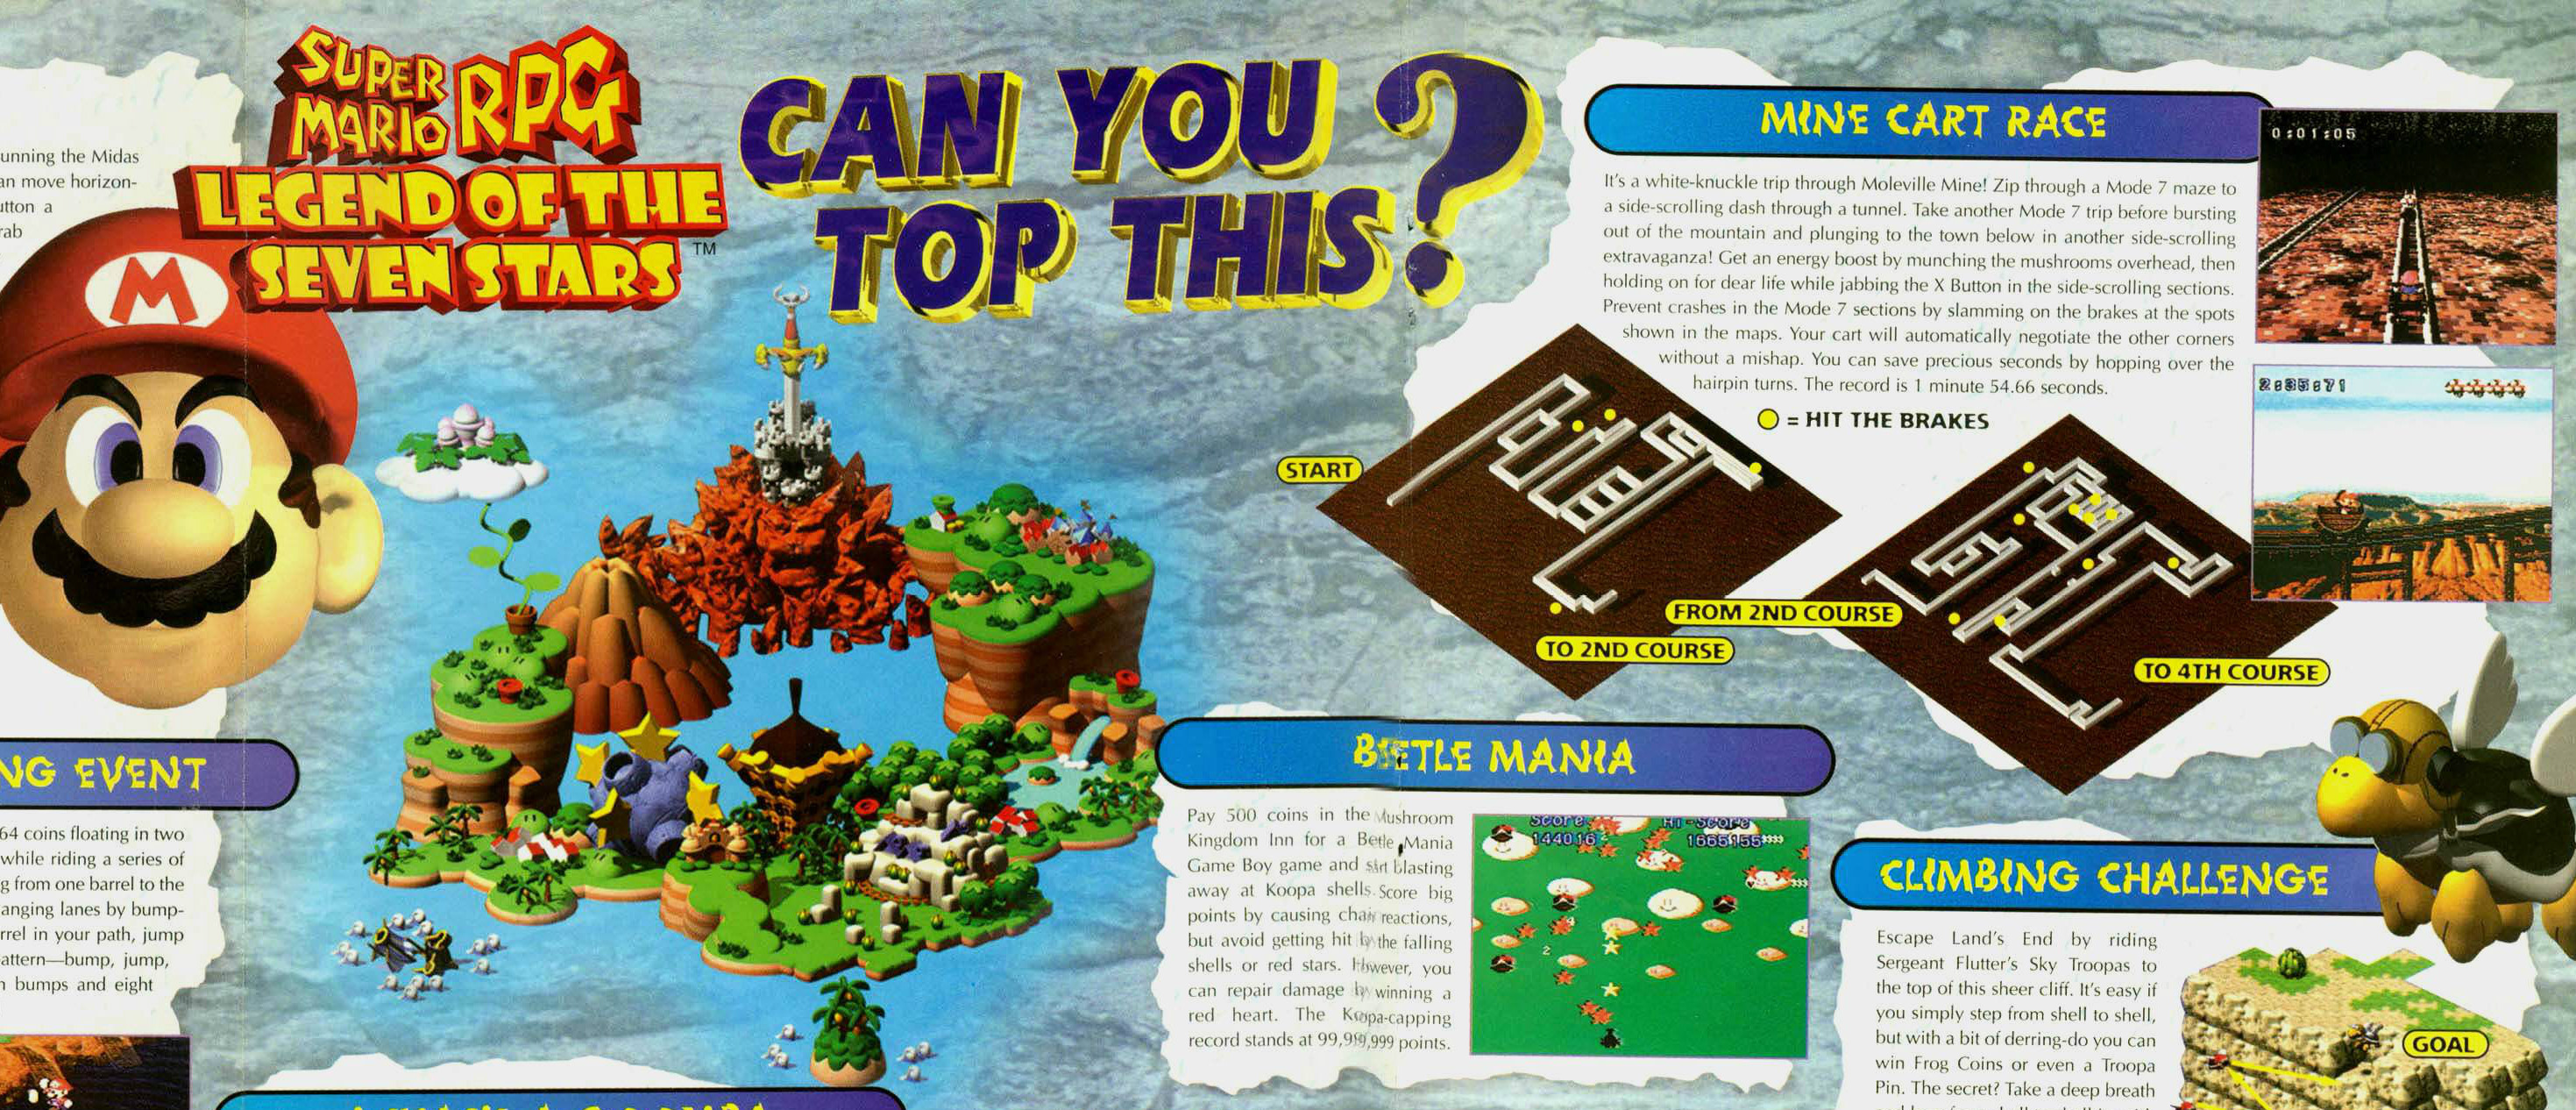 how high is super mario rpg on your personal all time ranking list